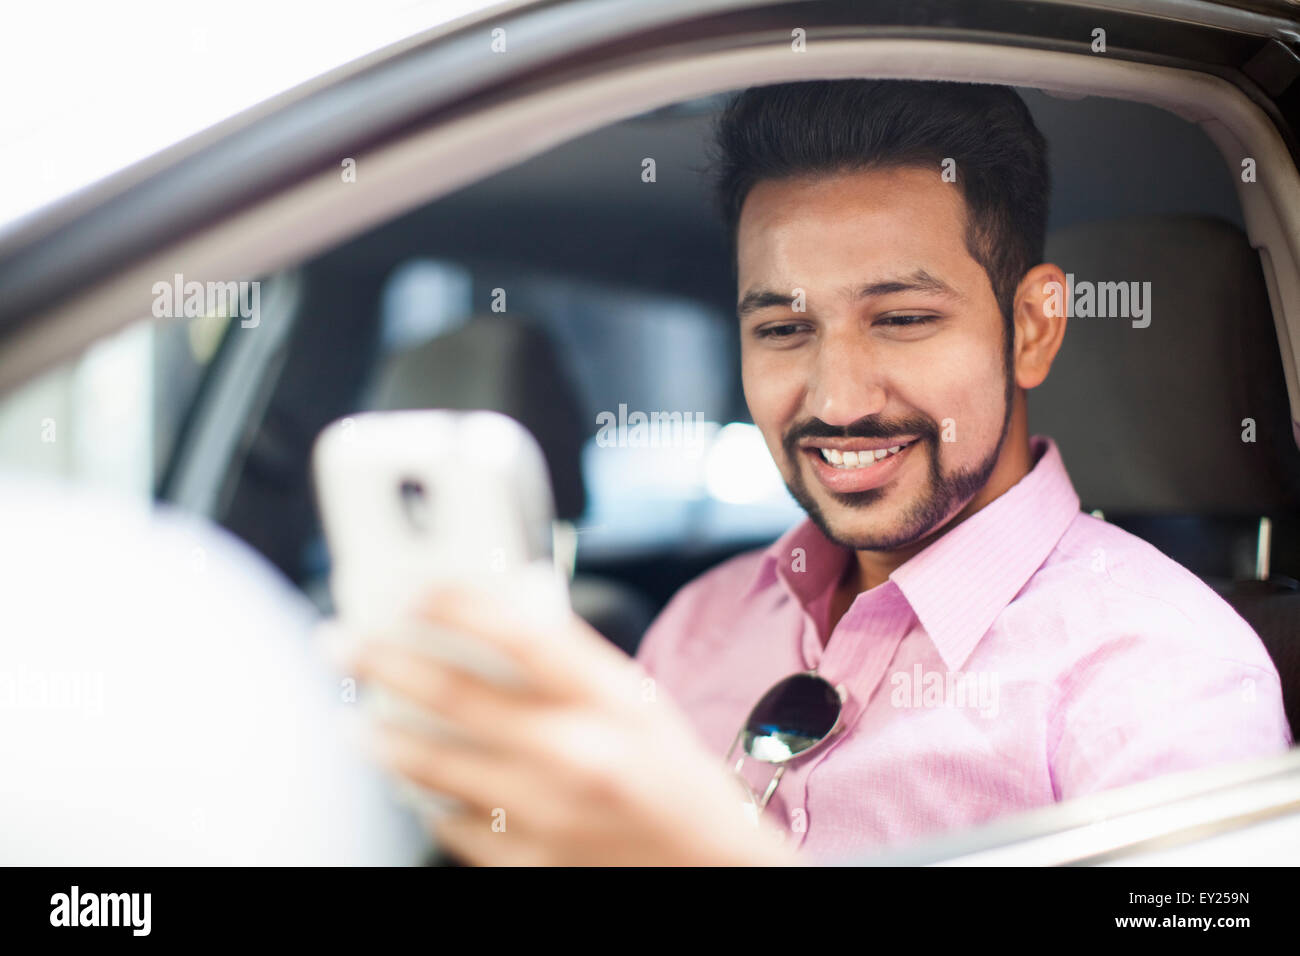 Young businessman reading smartphone text at car window - Stock Image